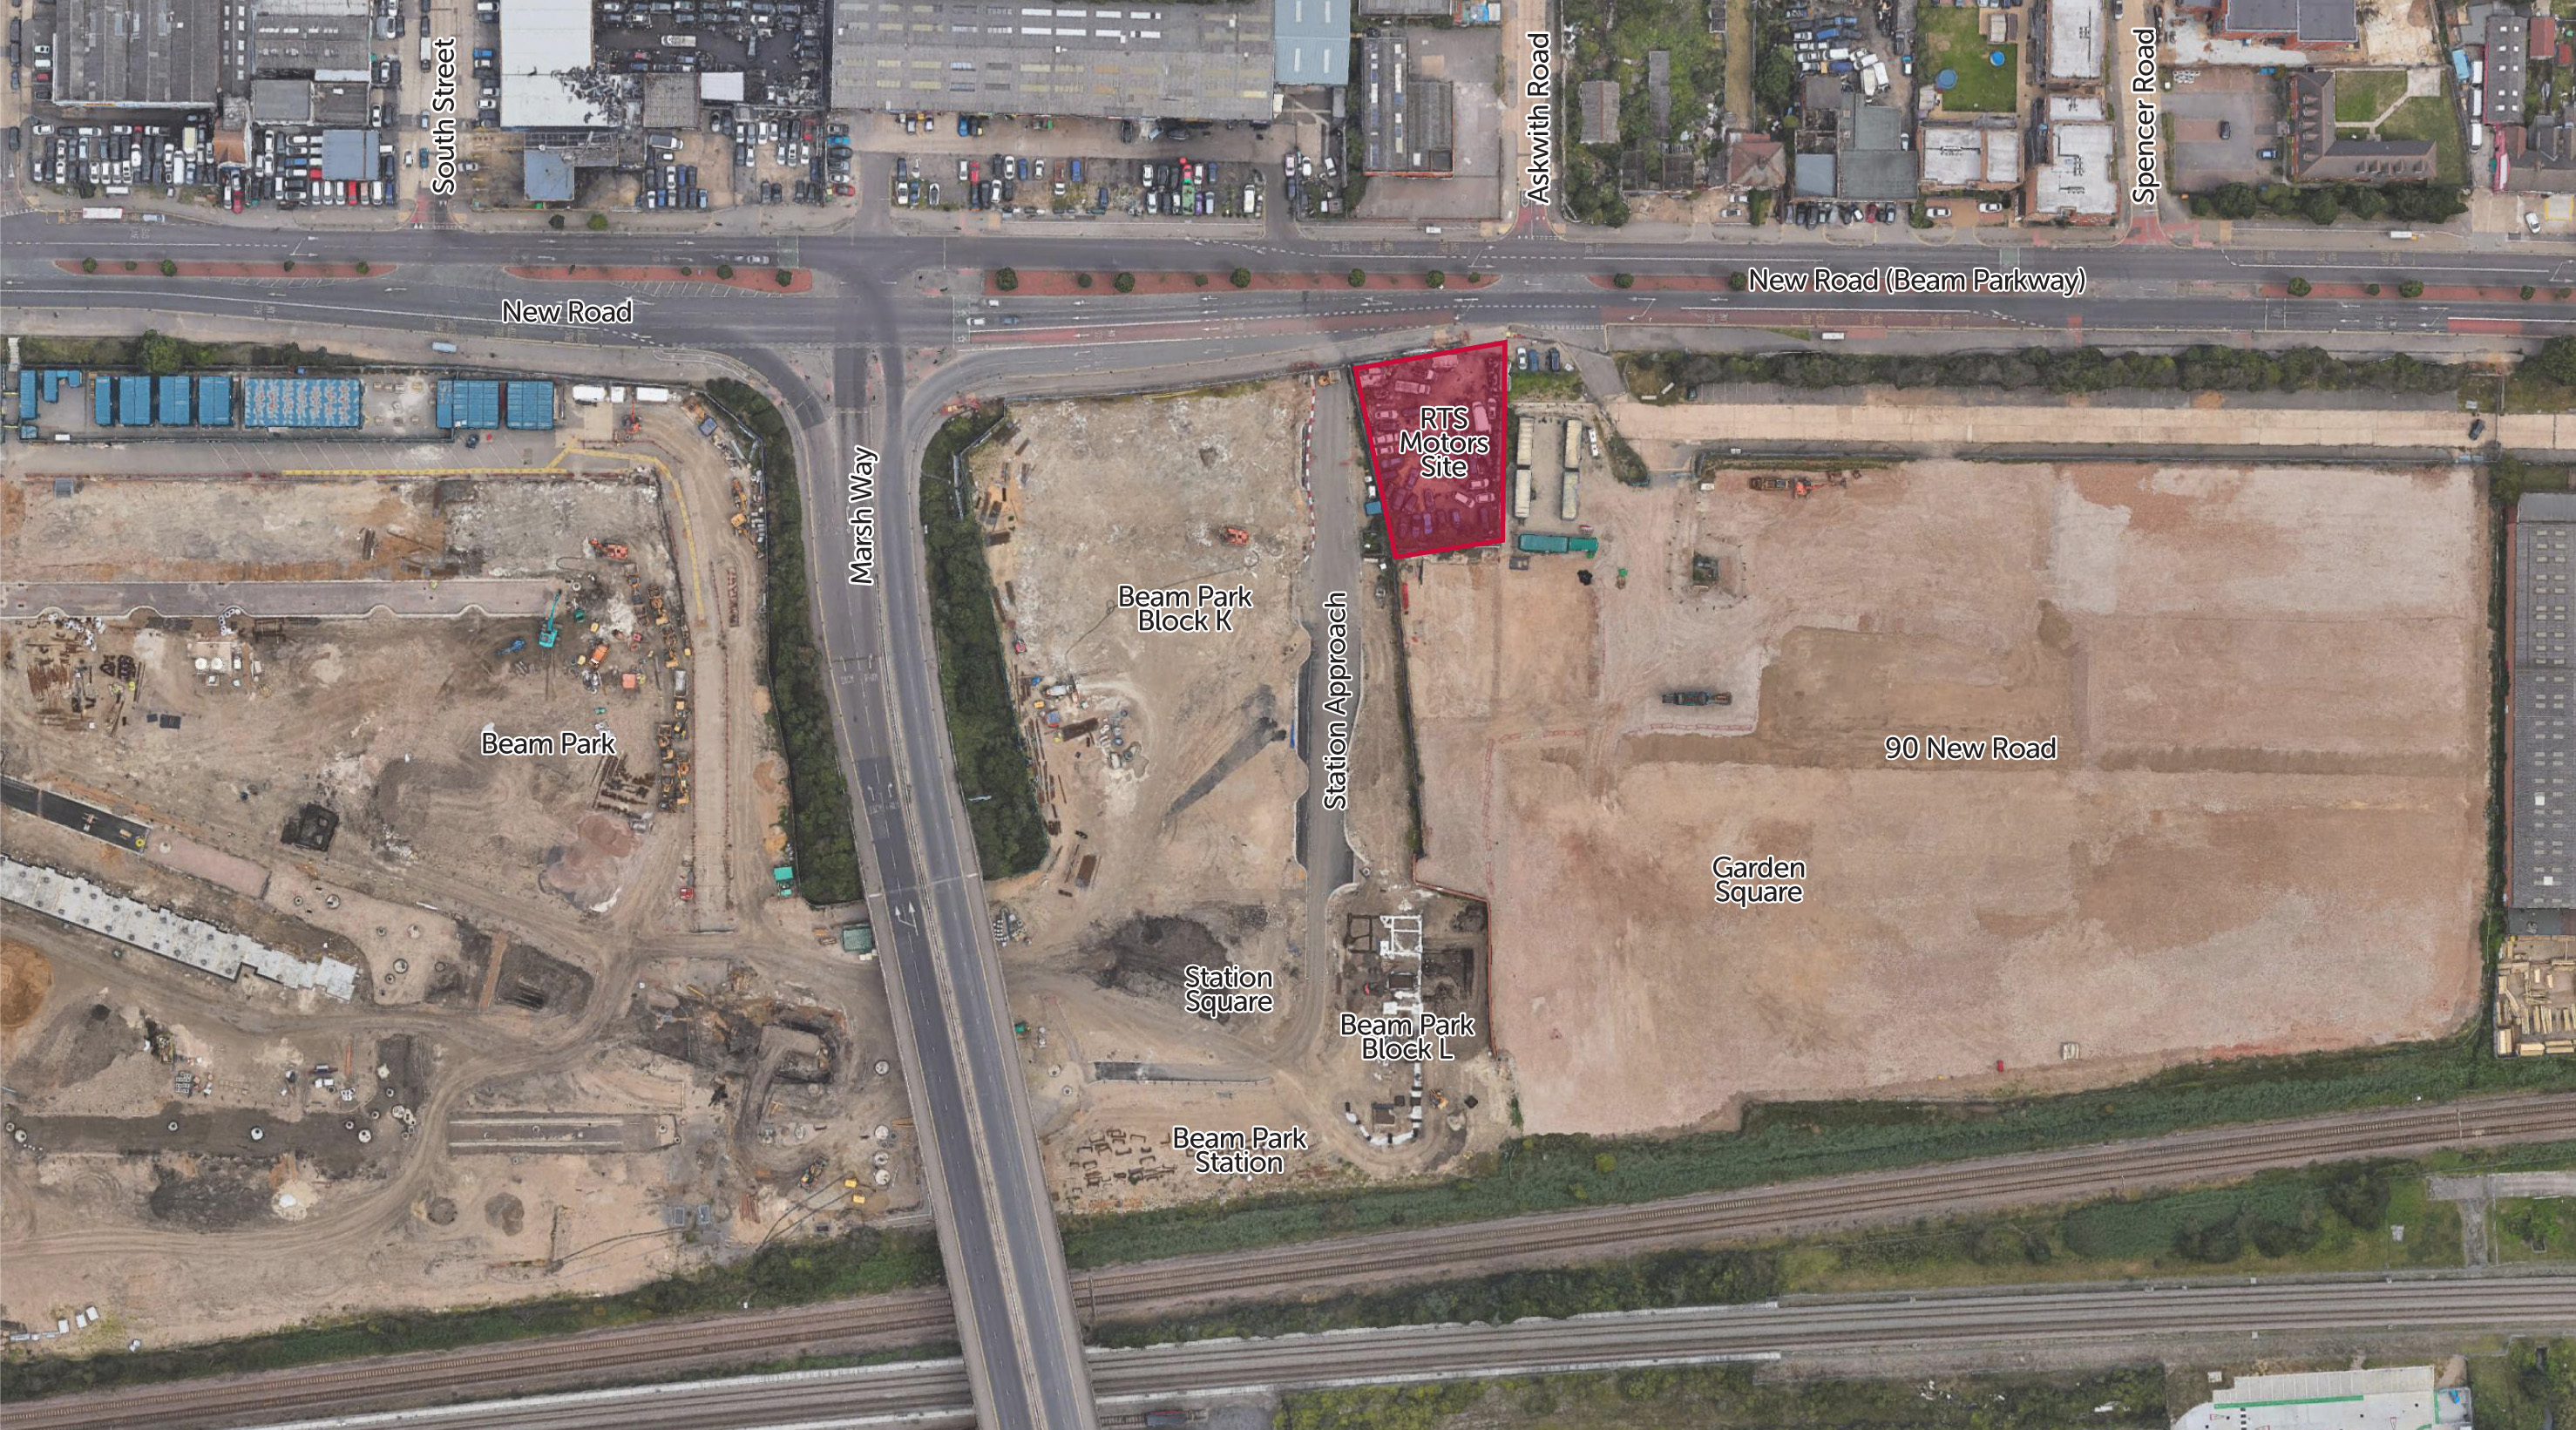 View of the RTS Motors site (in red) and wider context of 90 New Road and Beam Park